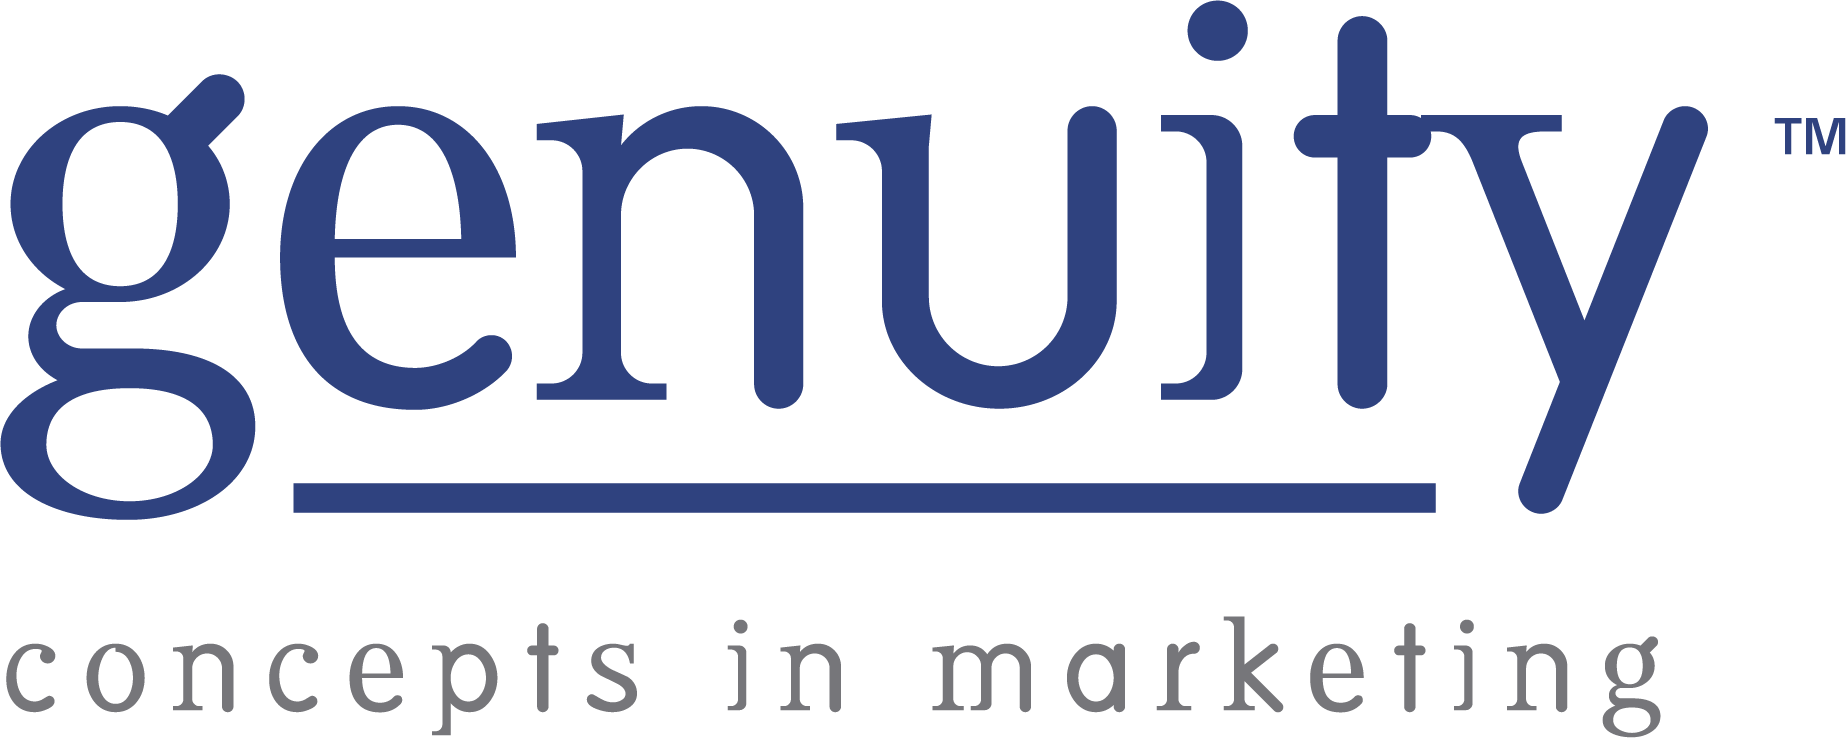 GENUITY Concepts in Marketing 2 Color logo.png